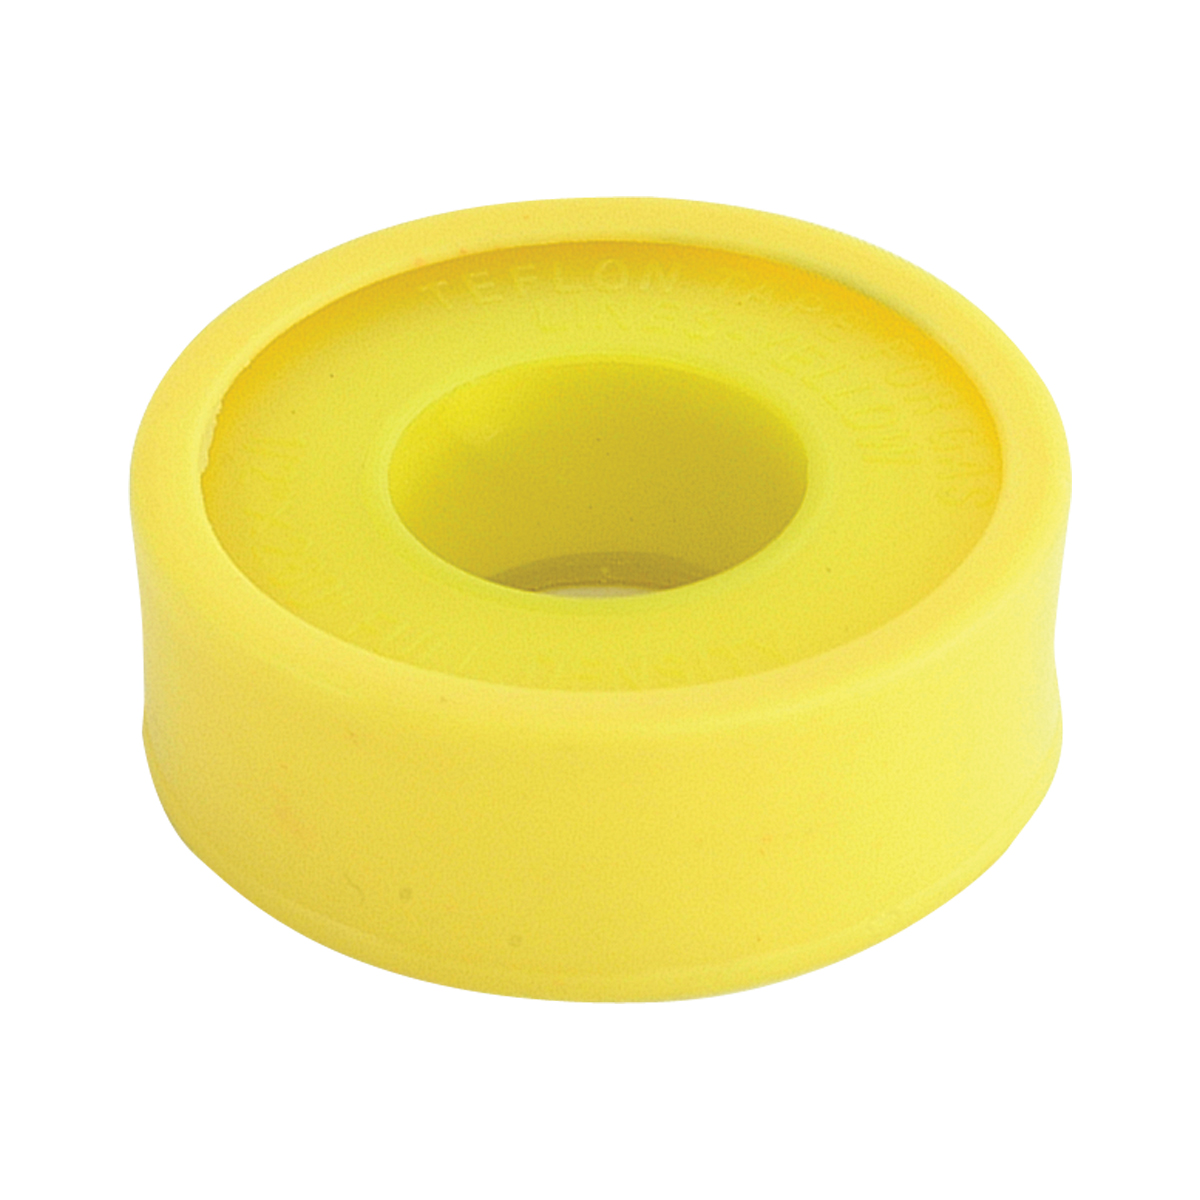 "1/2"" x 260"" Teflon Pipe Thread Tape"